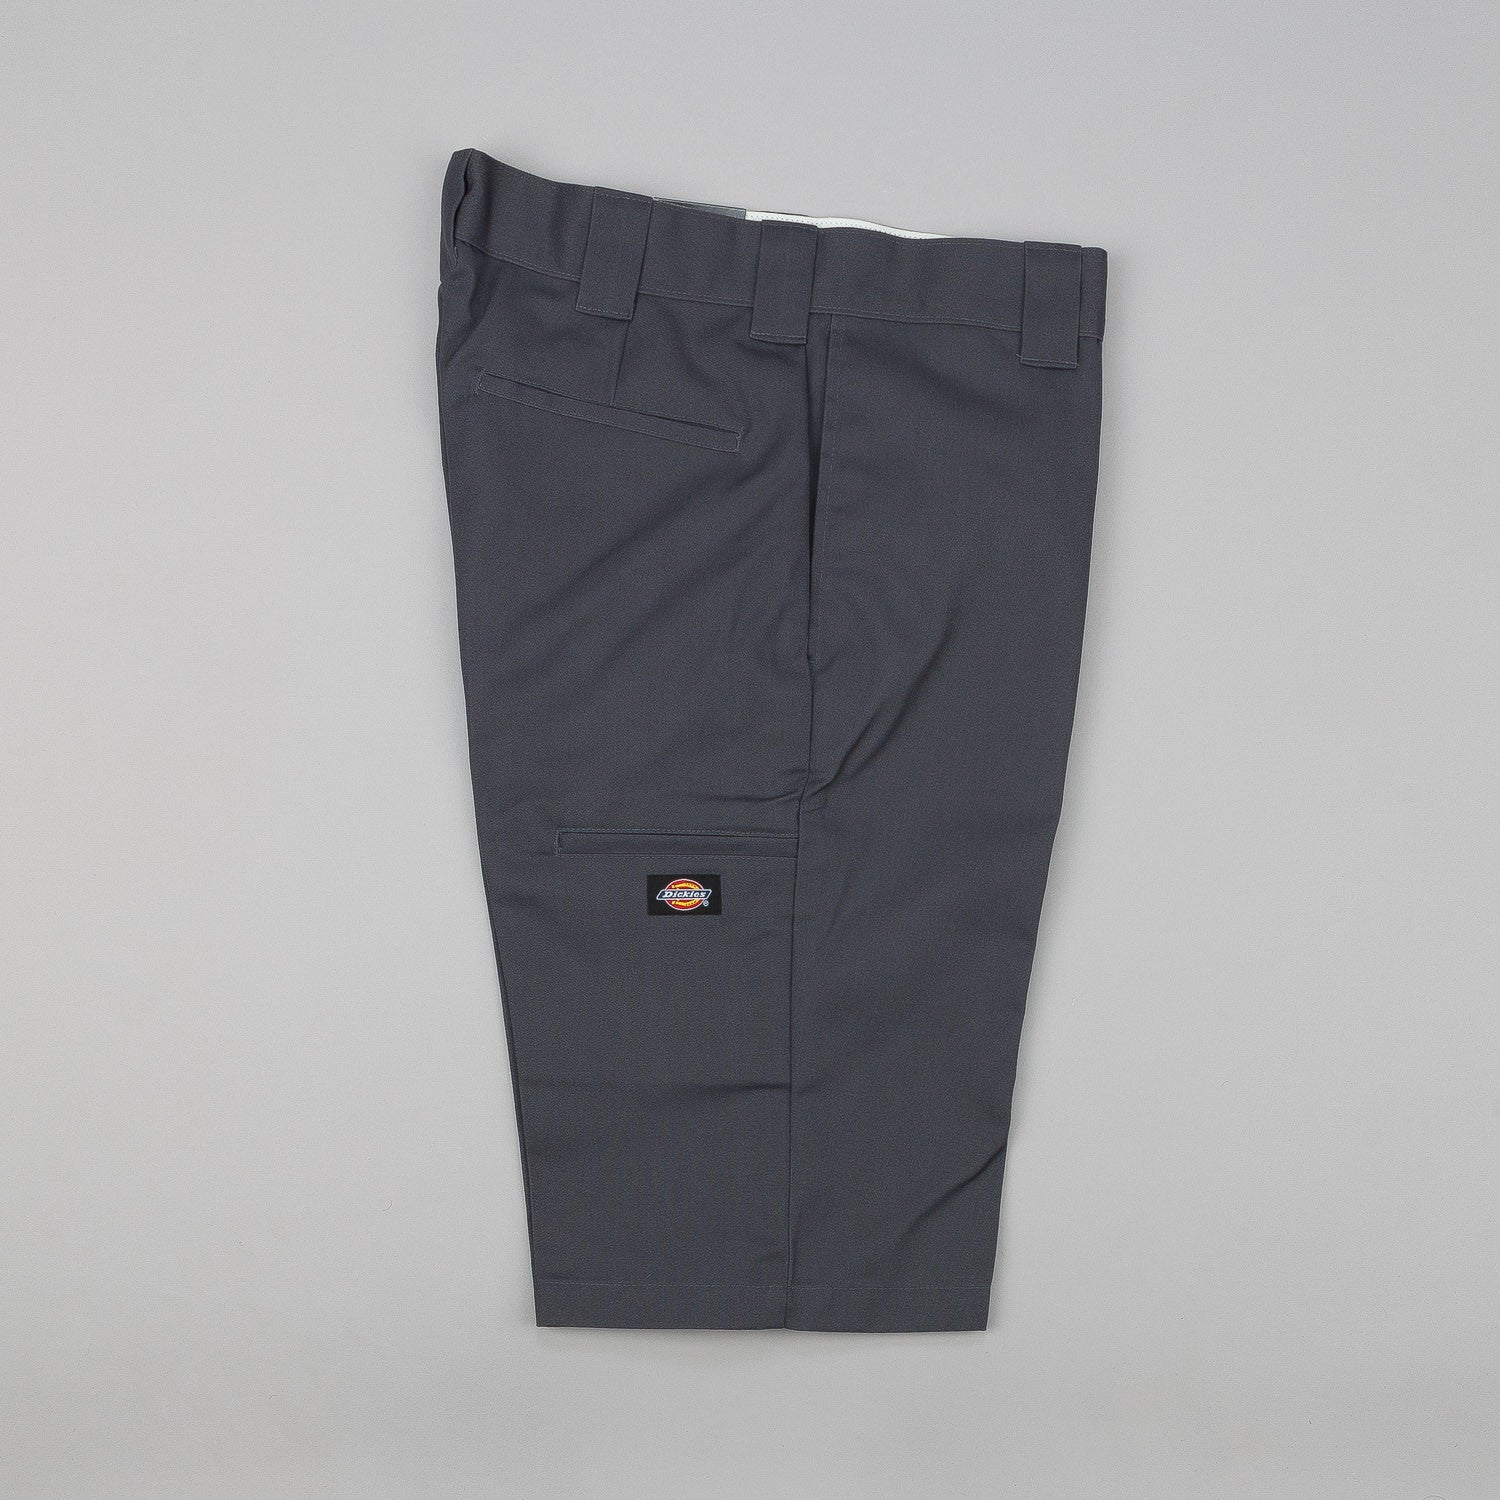 "Dickies 803 Slim 13"" Shorts - Charcoal Grey"